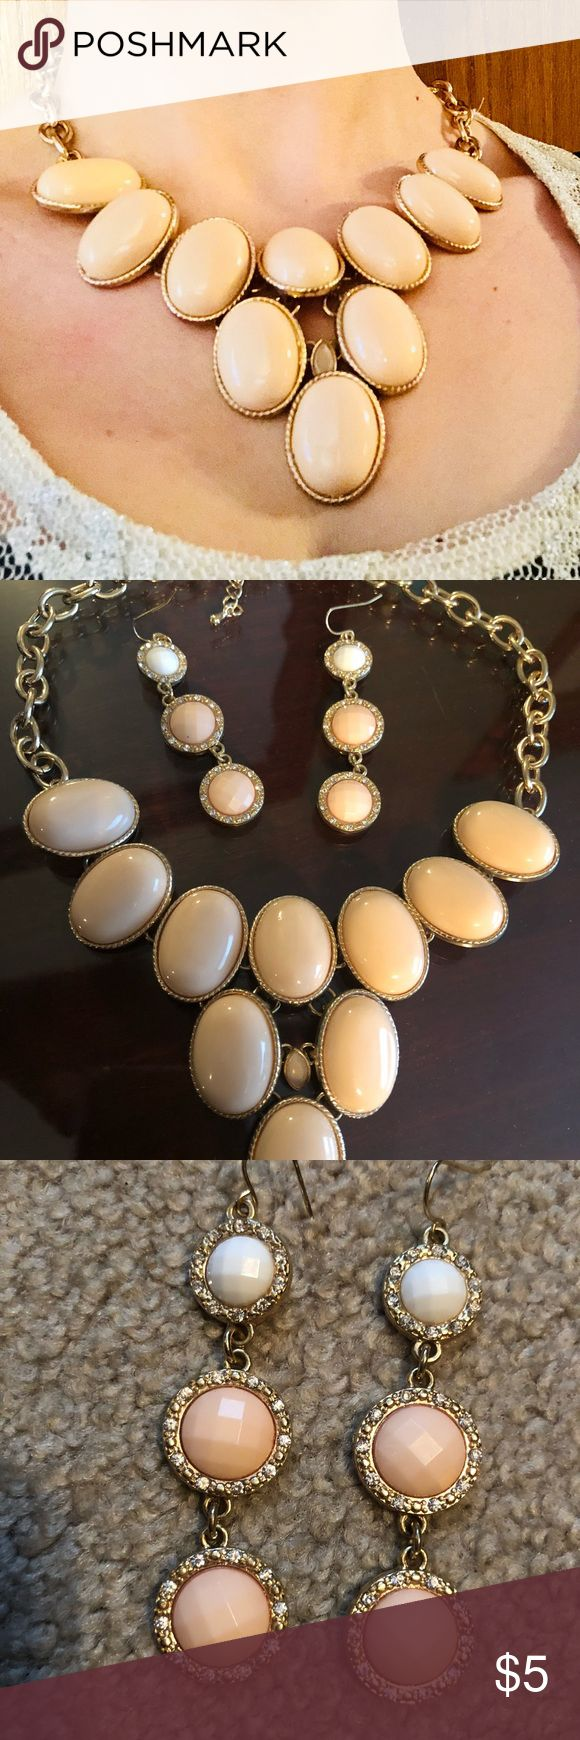 Women's necklace and earring set Gold & nude necklace, earrings are gold, nude & white with diamond details. Very elegant! Jewelry Necklaces